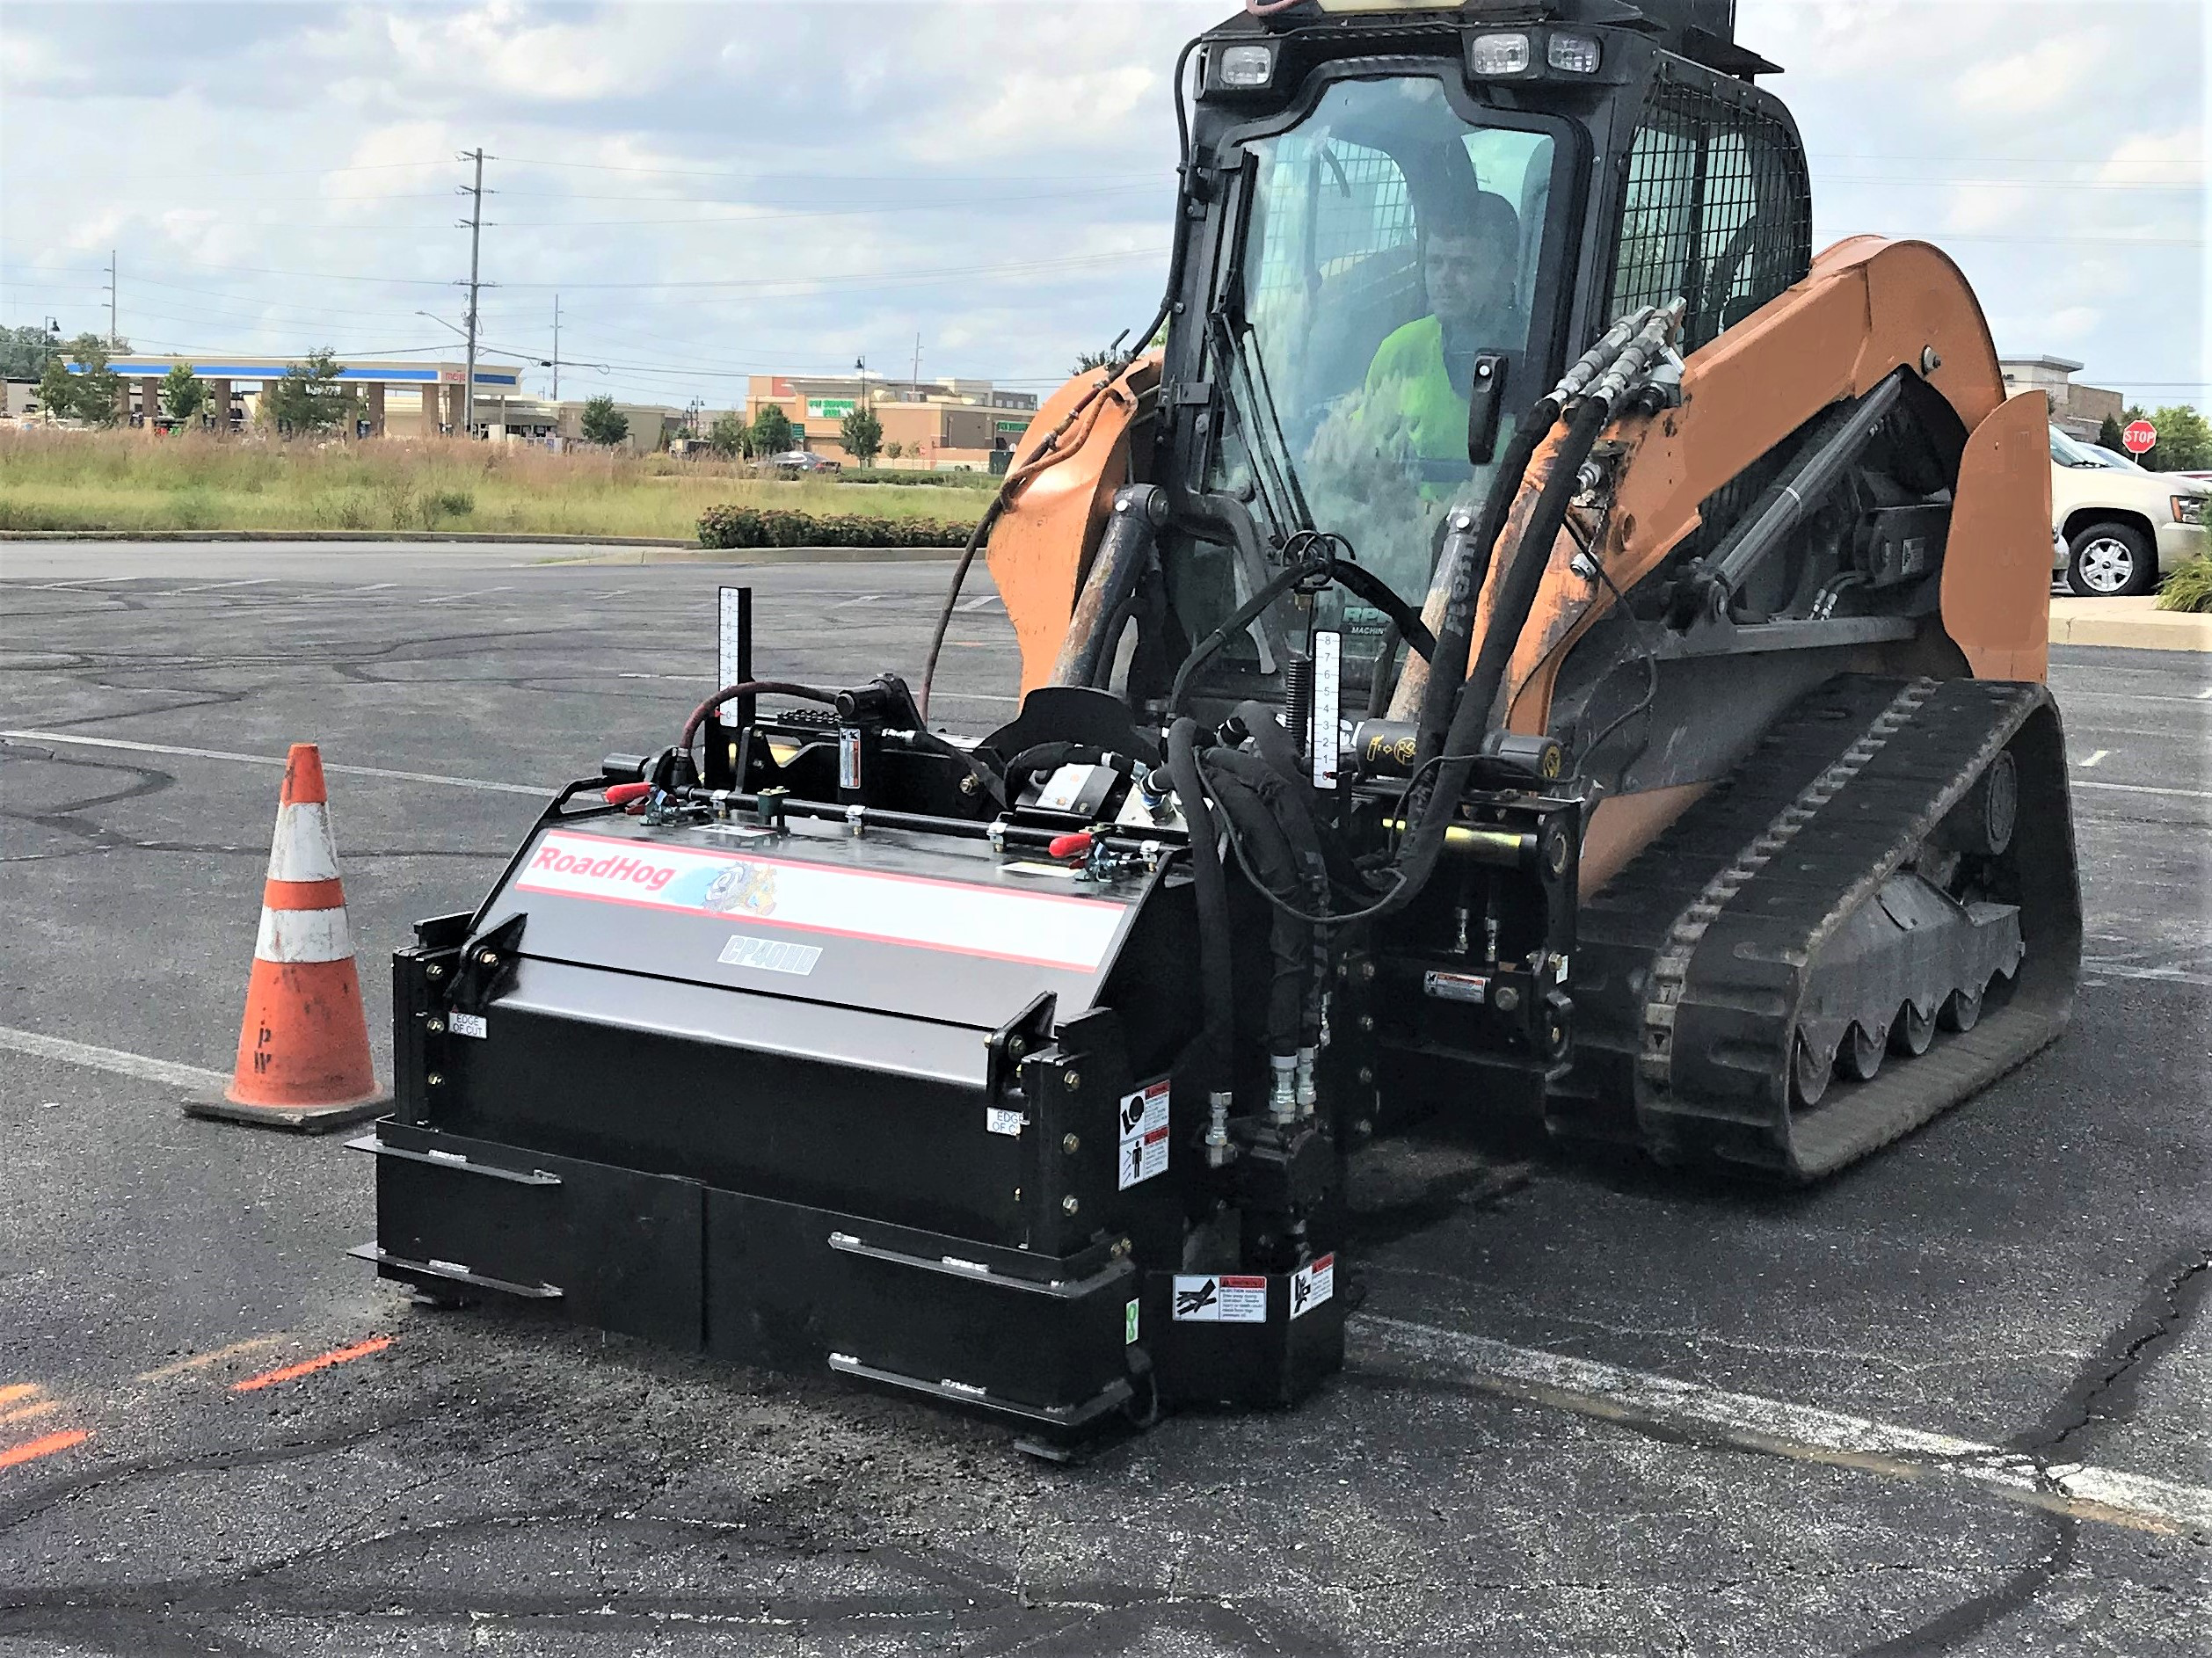 RoadHog's G5HD skid steer cold planer attached to a skid steer